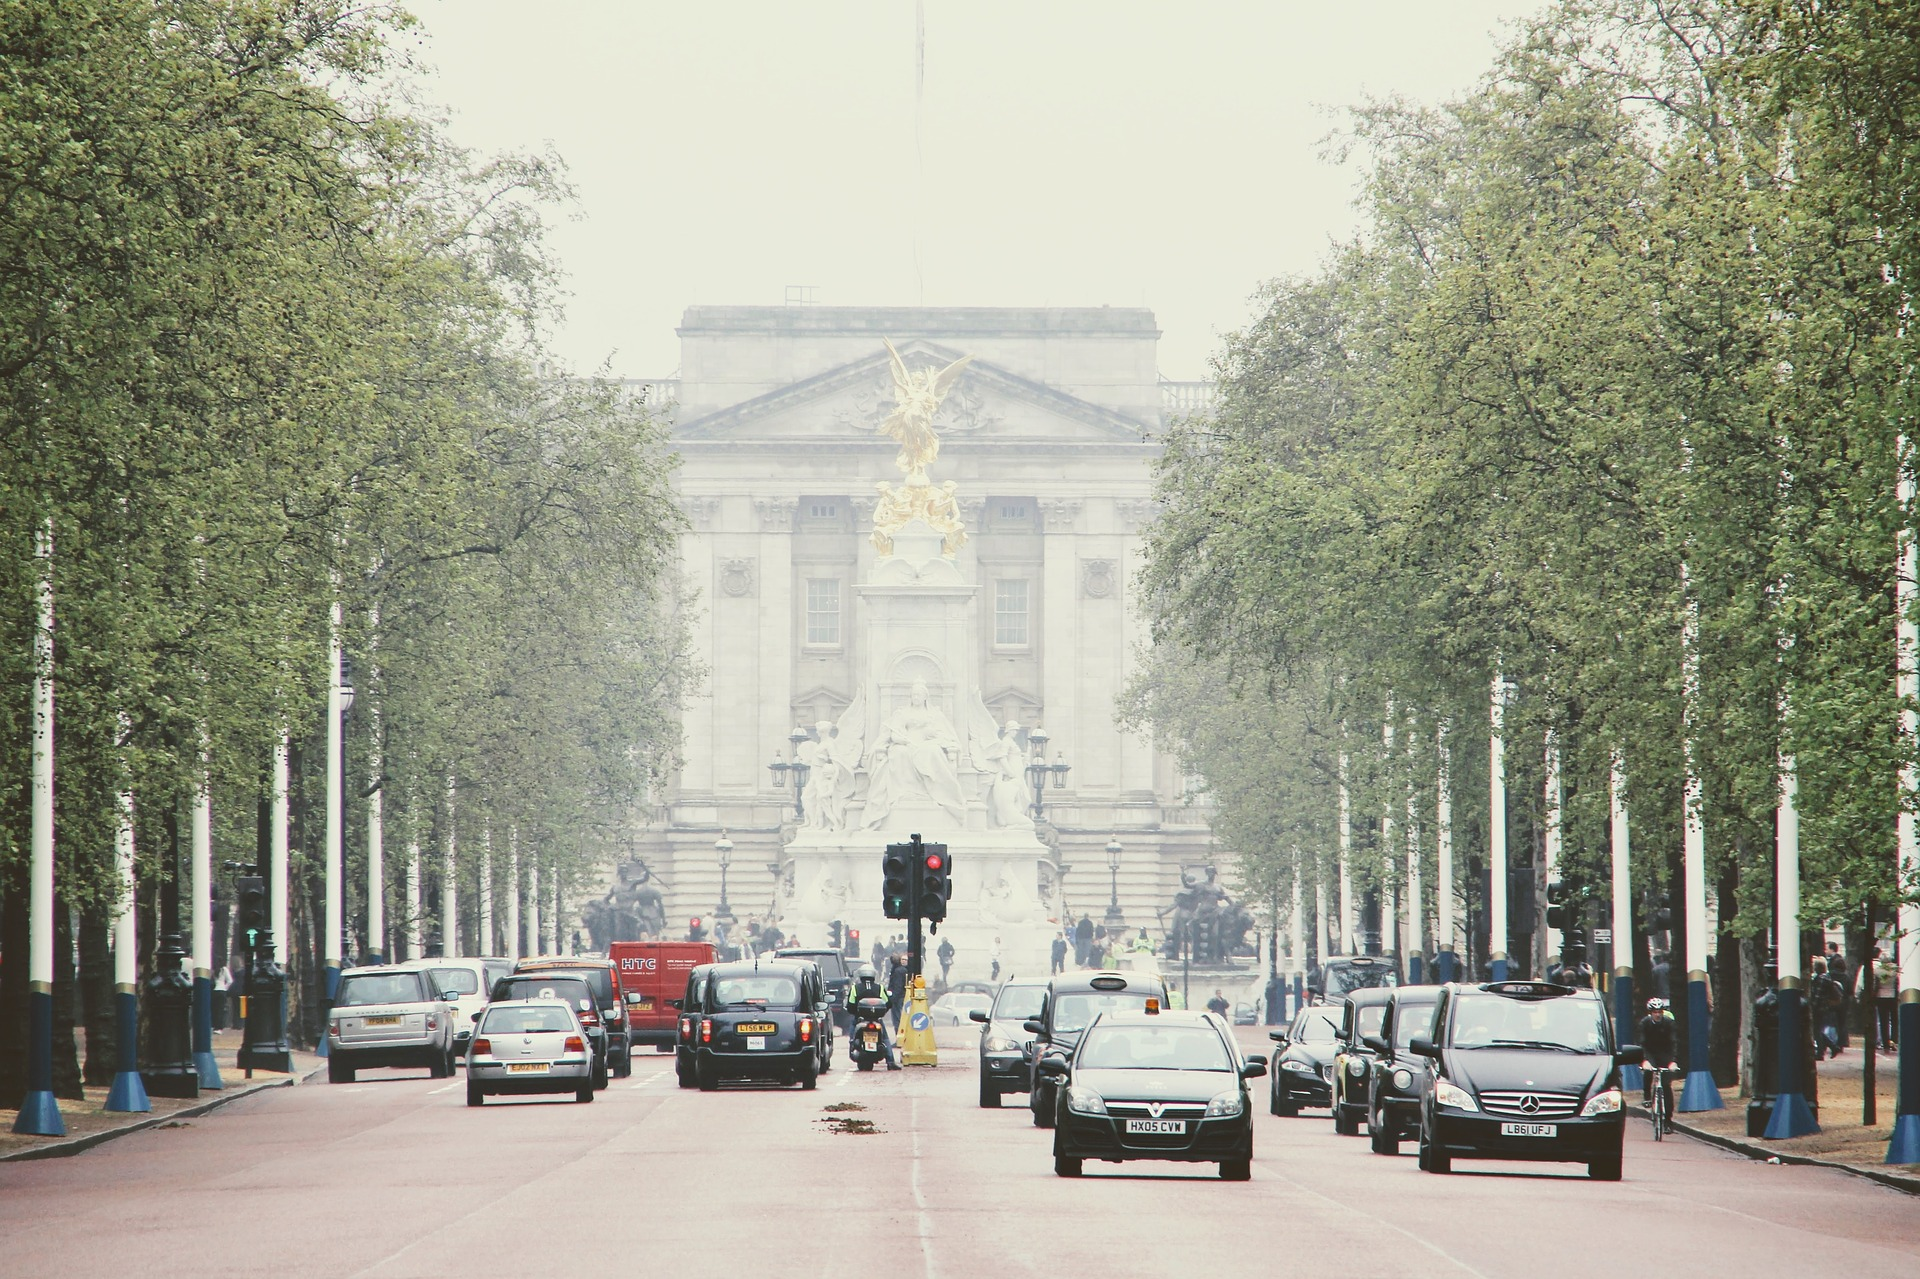 London's Ultra-Low Emission Zone Kicks in Today